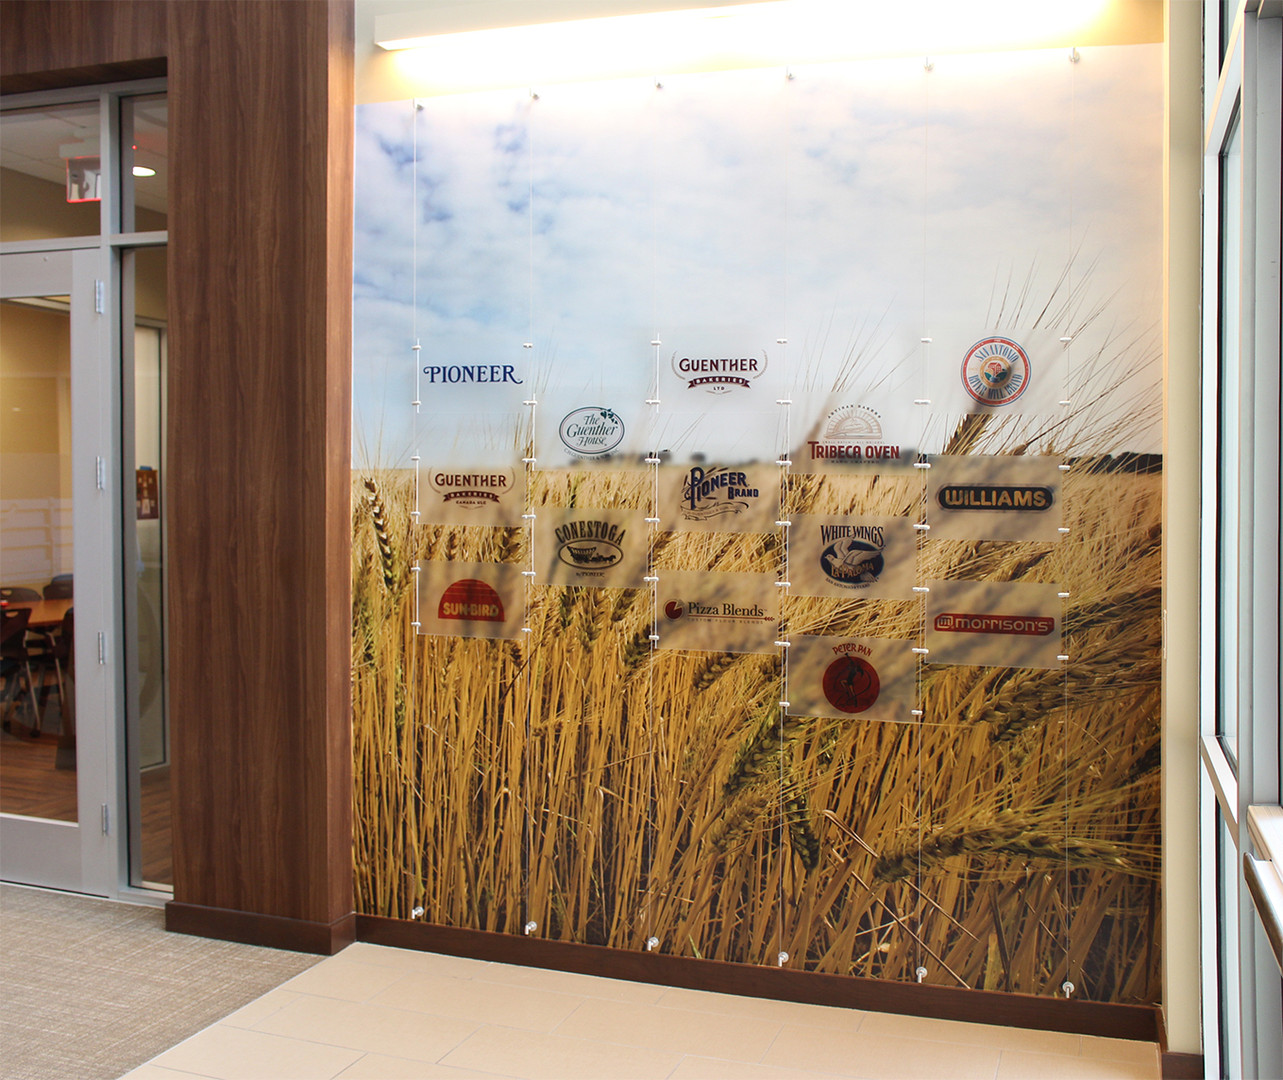 Printed plexiglass and textured wall covering